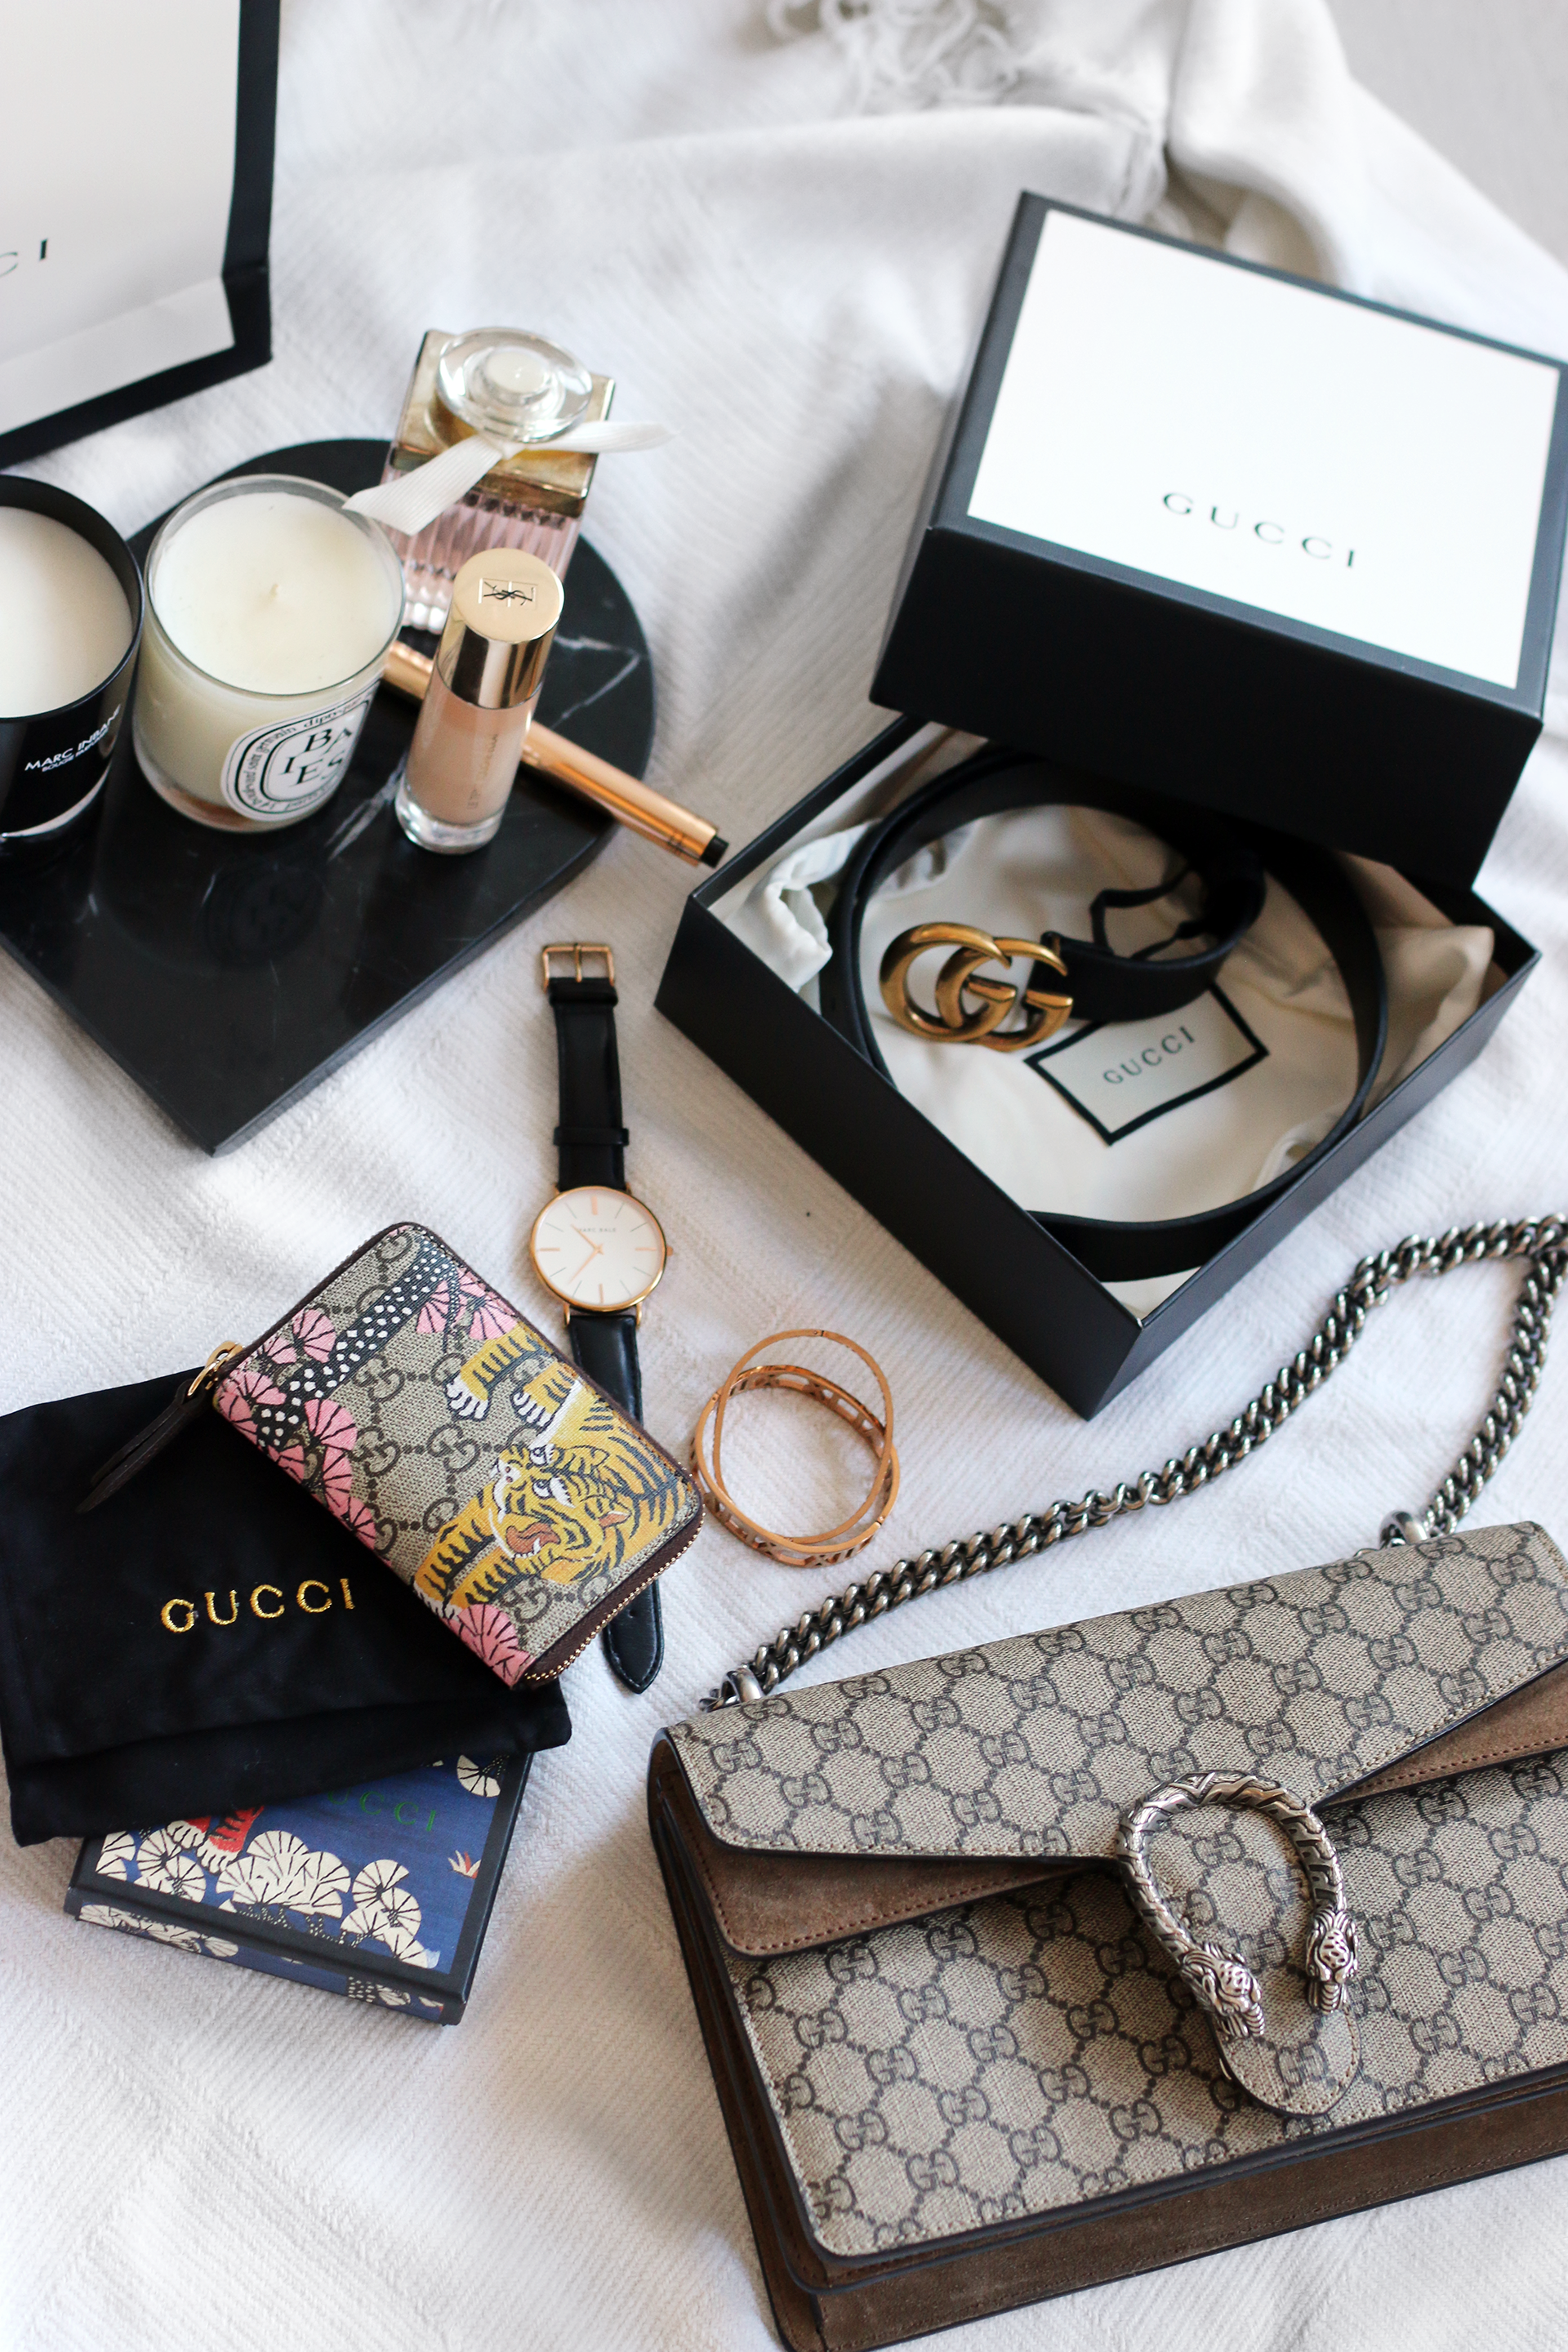 A Gucci Haul: GG Marmont Belt & Cruise Collection Bengal Wallet